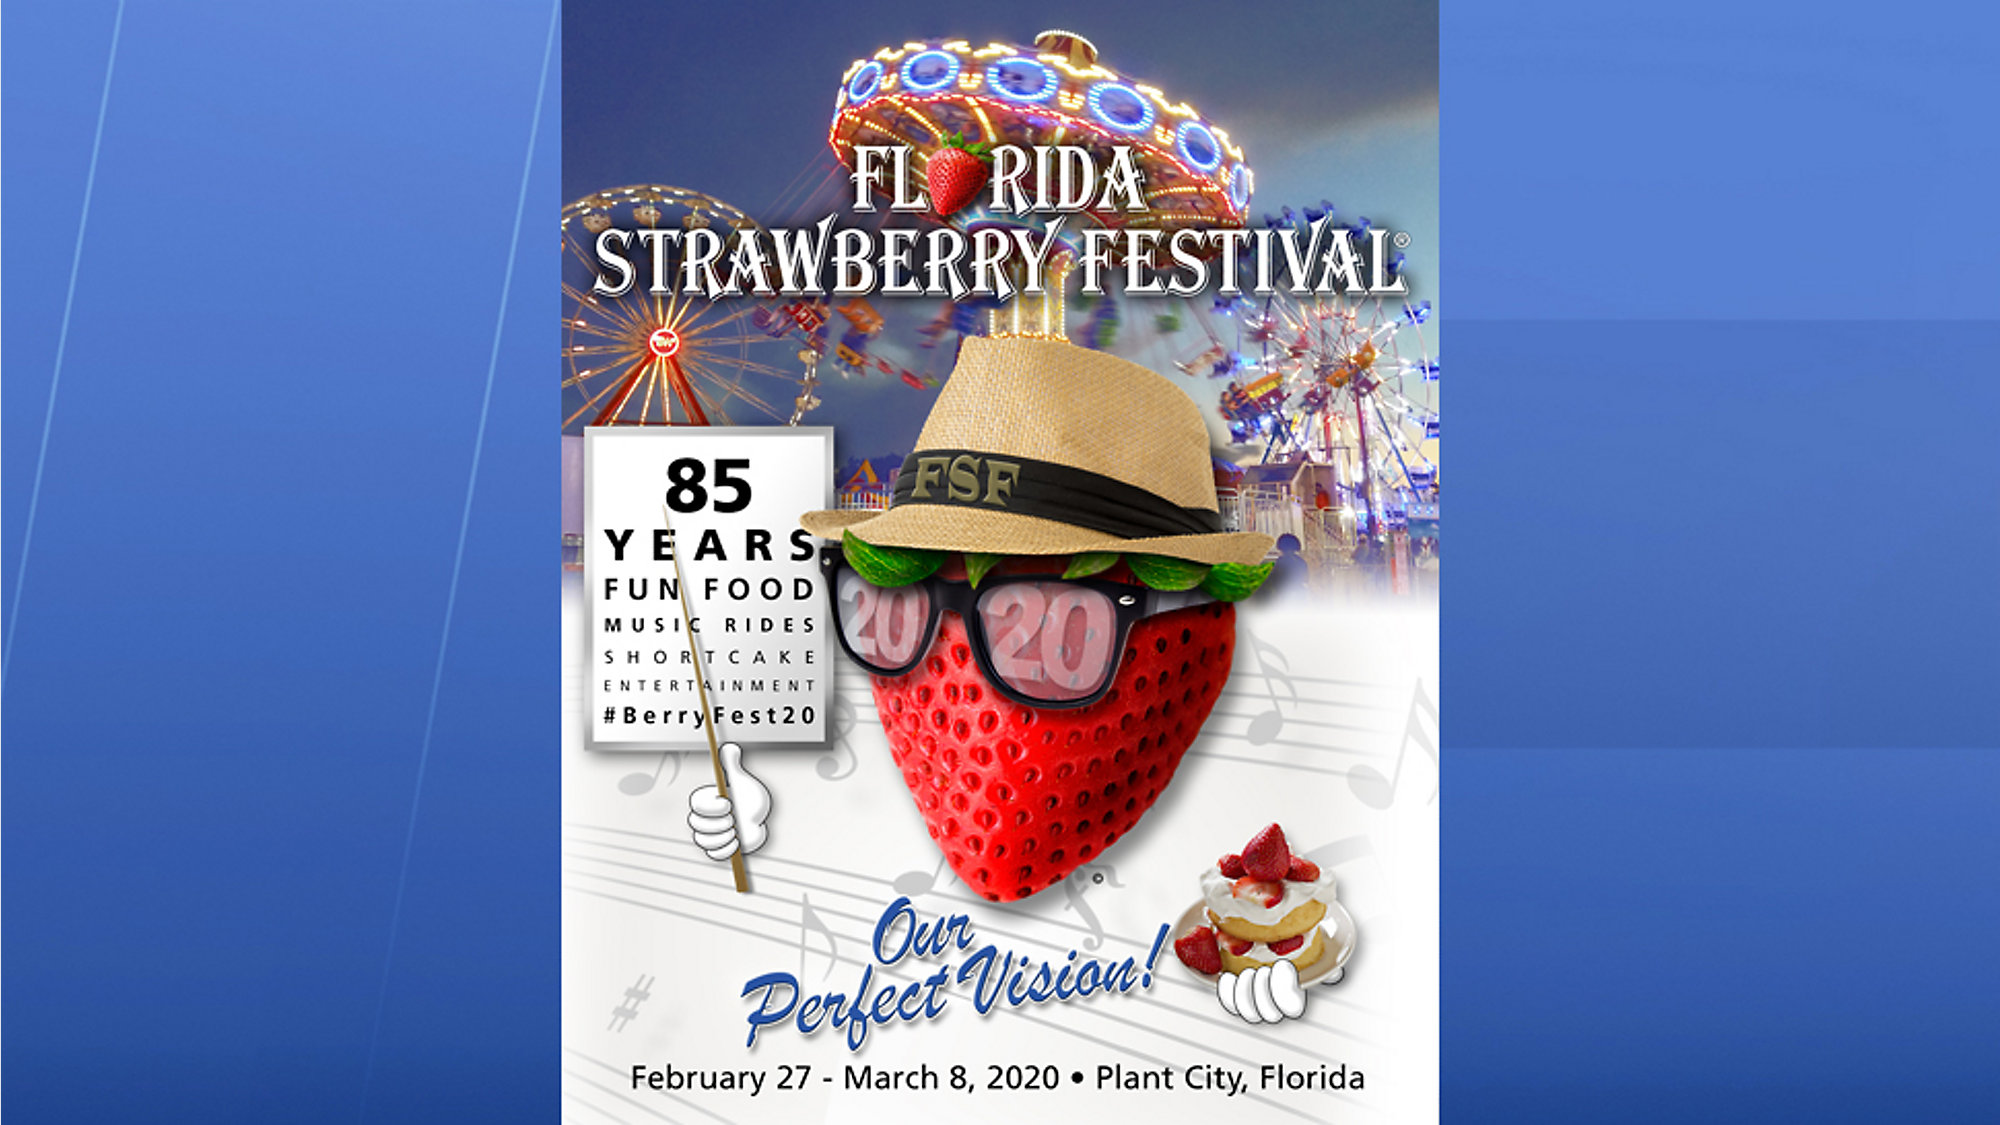 Strawberry Music Festival 2020 Florida Strawberry Fest Announces New Theme for 2020 Event